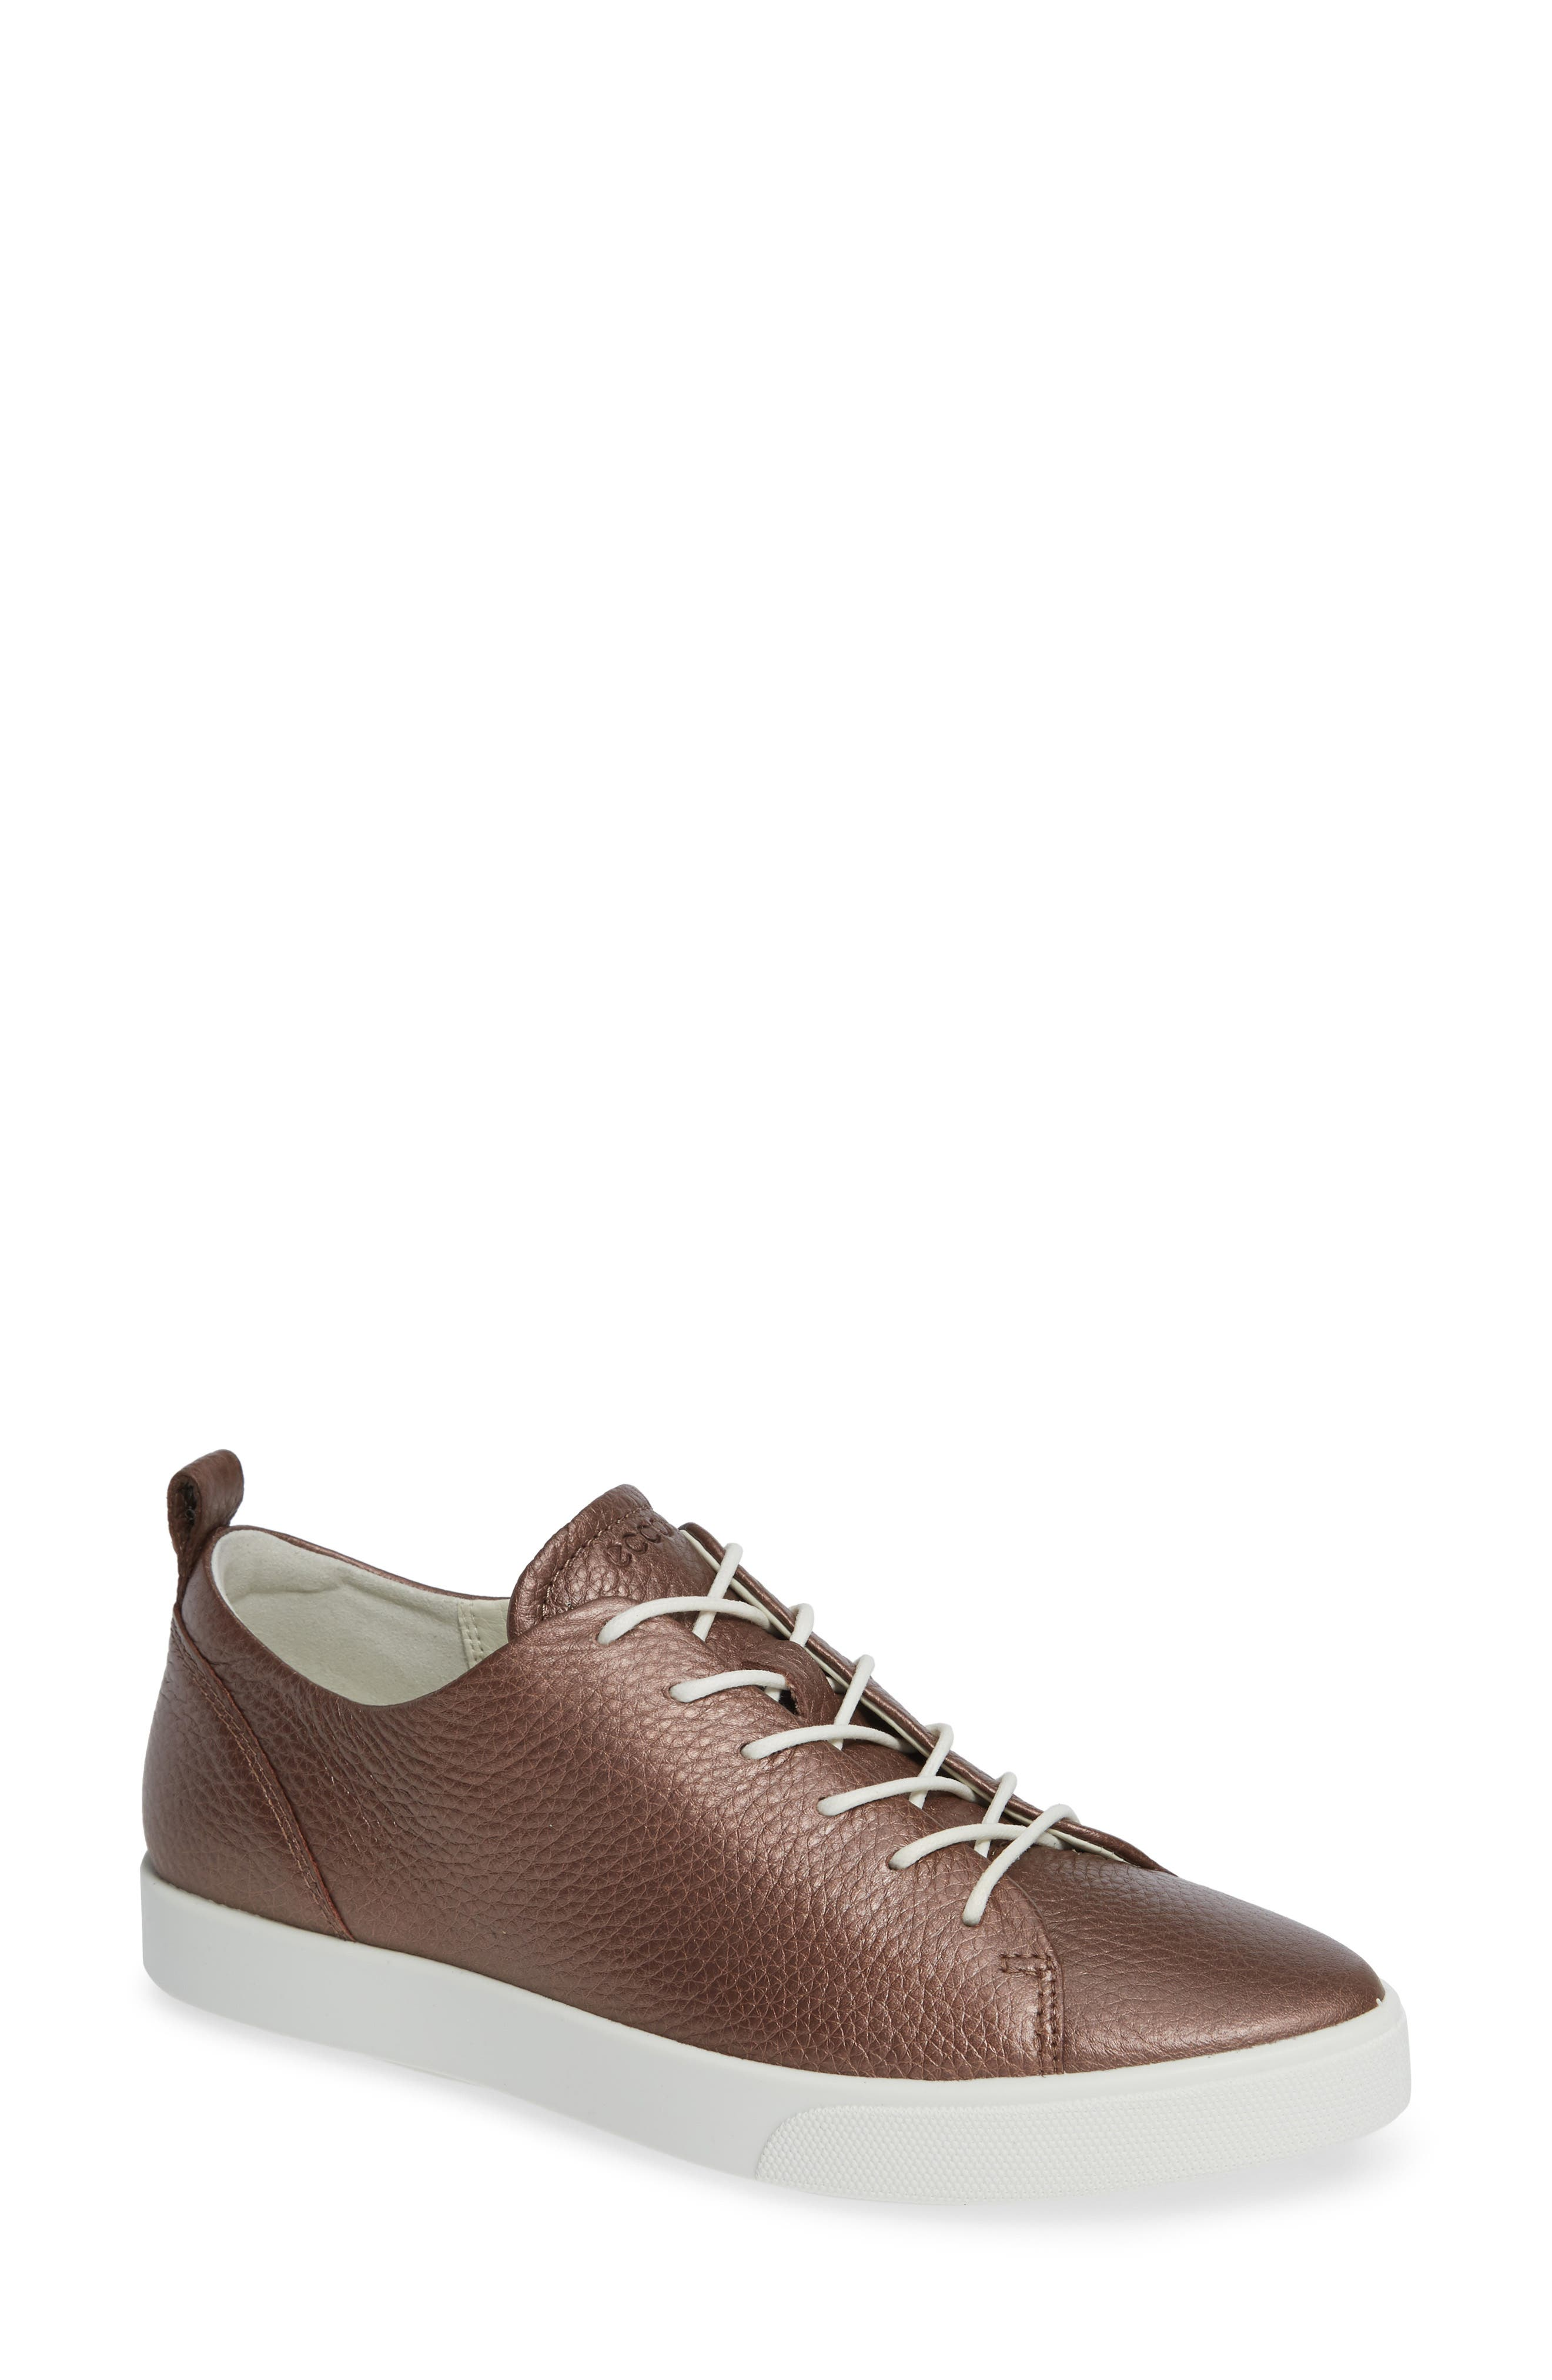 Gillian Sneaker,                             Main thumbnail 1, color,                             DEEP TAUPE/ BRONZE LEATHER